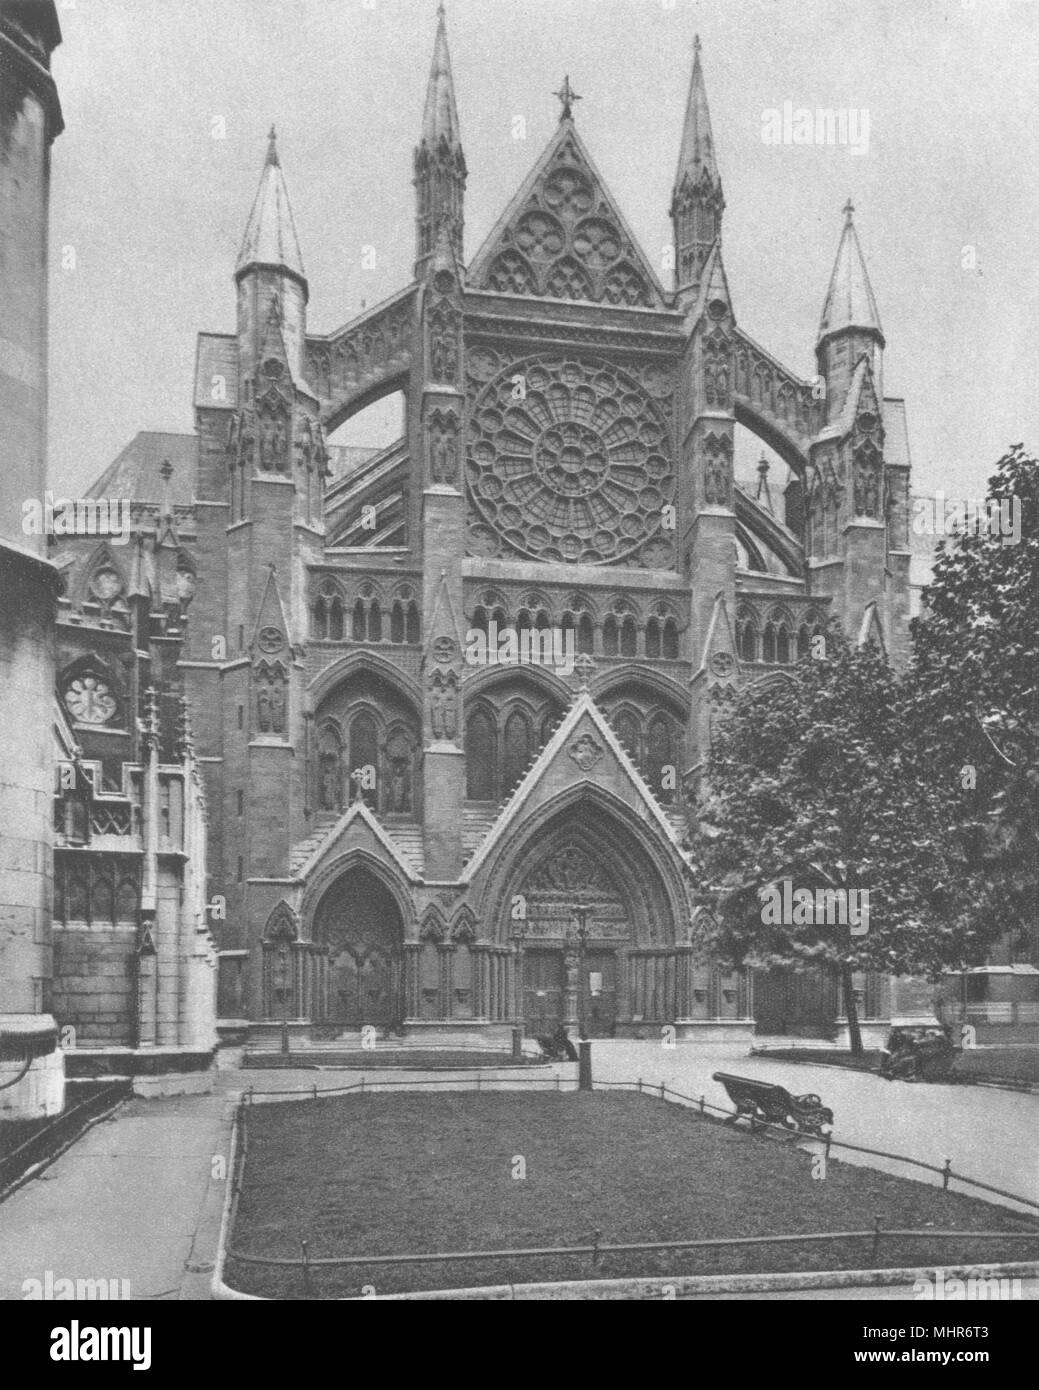 WESTMINSTER ABBEY. North front and the main entrance to the Abbey 1926 print Stock Photo